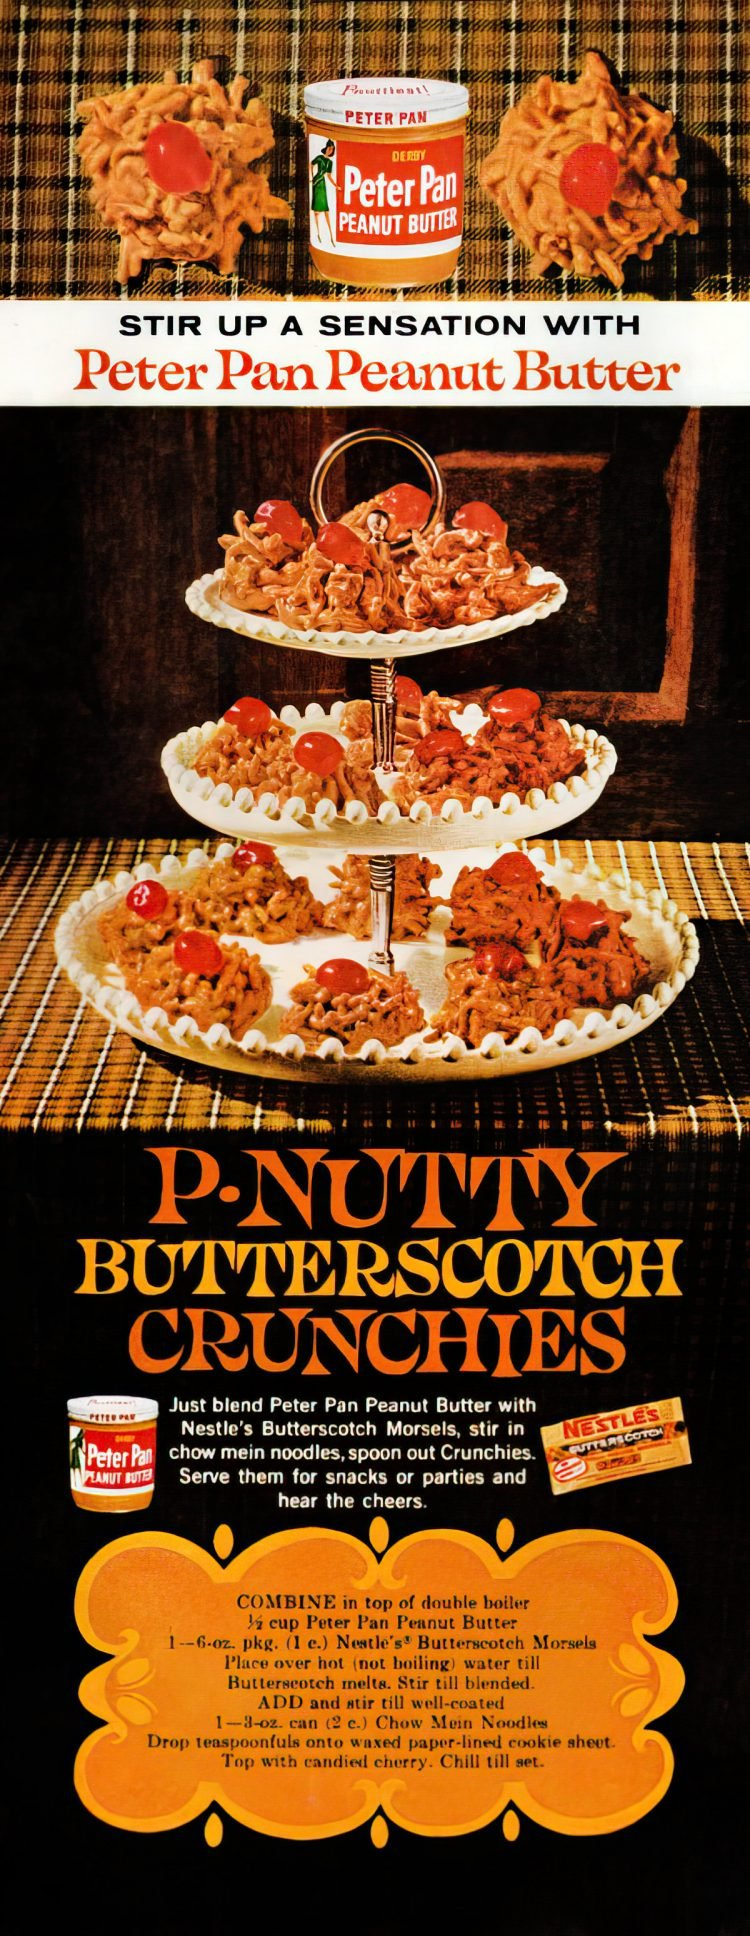 P-nutty butterscotch crunchies recipe from 1961